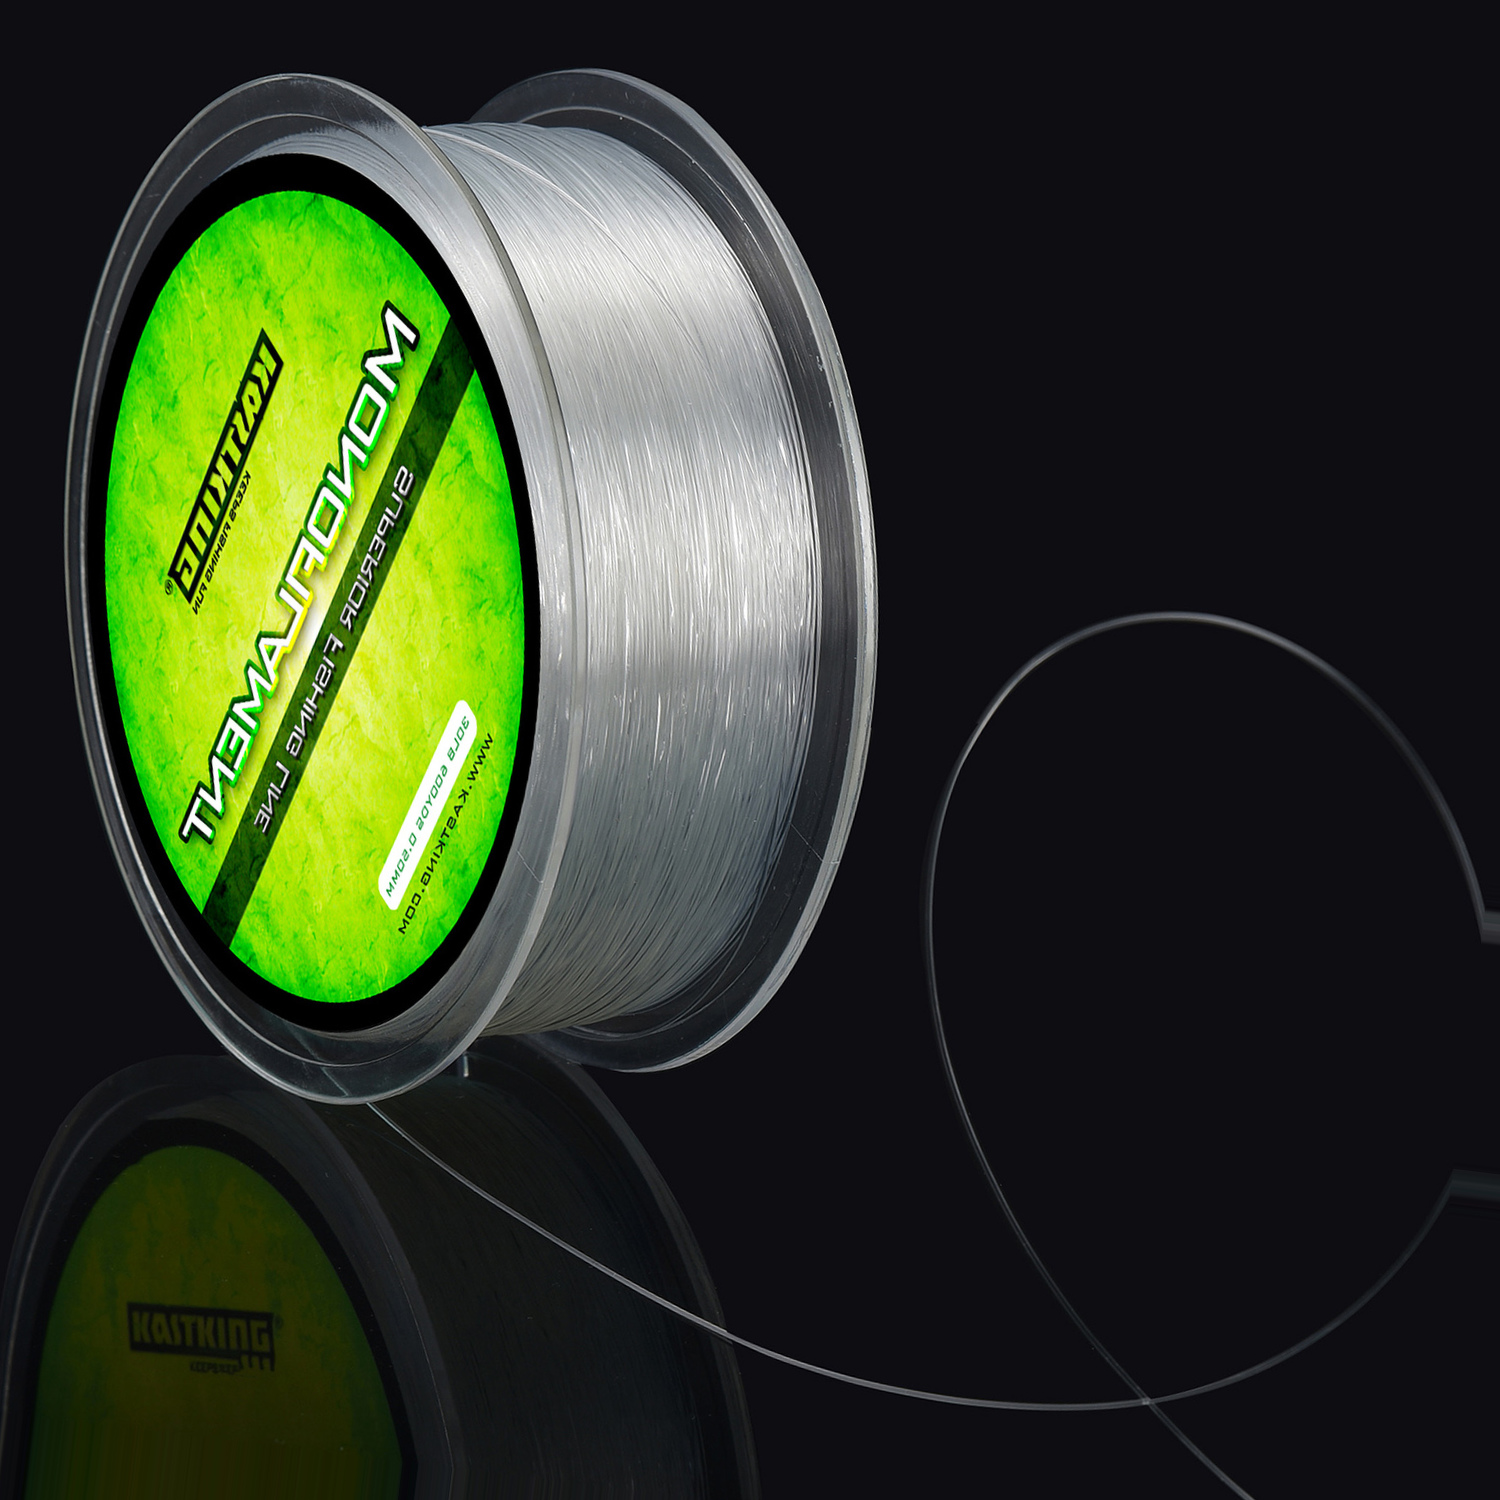 KastKing Clear Premium Monofilament Fishing Line